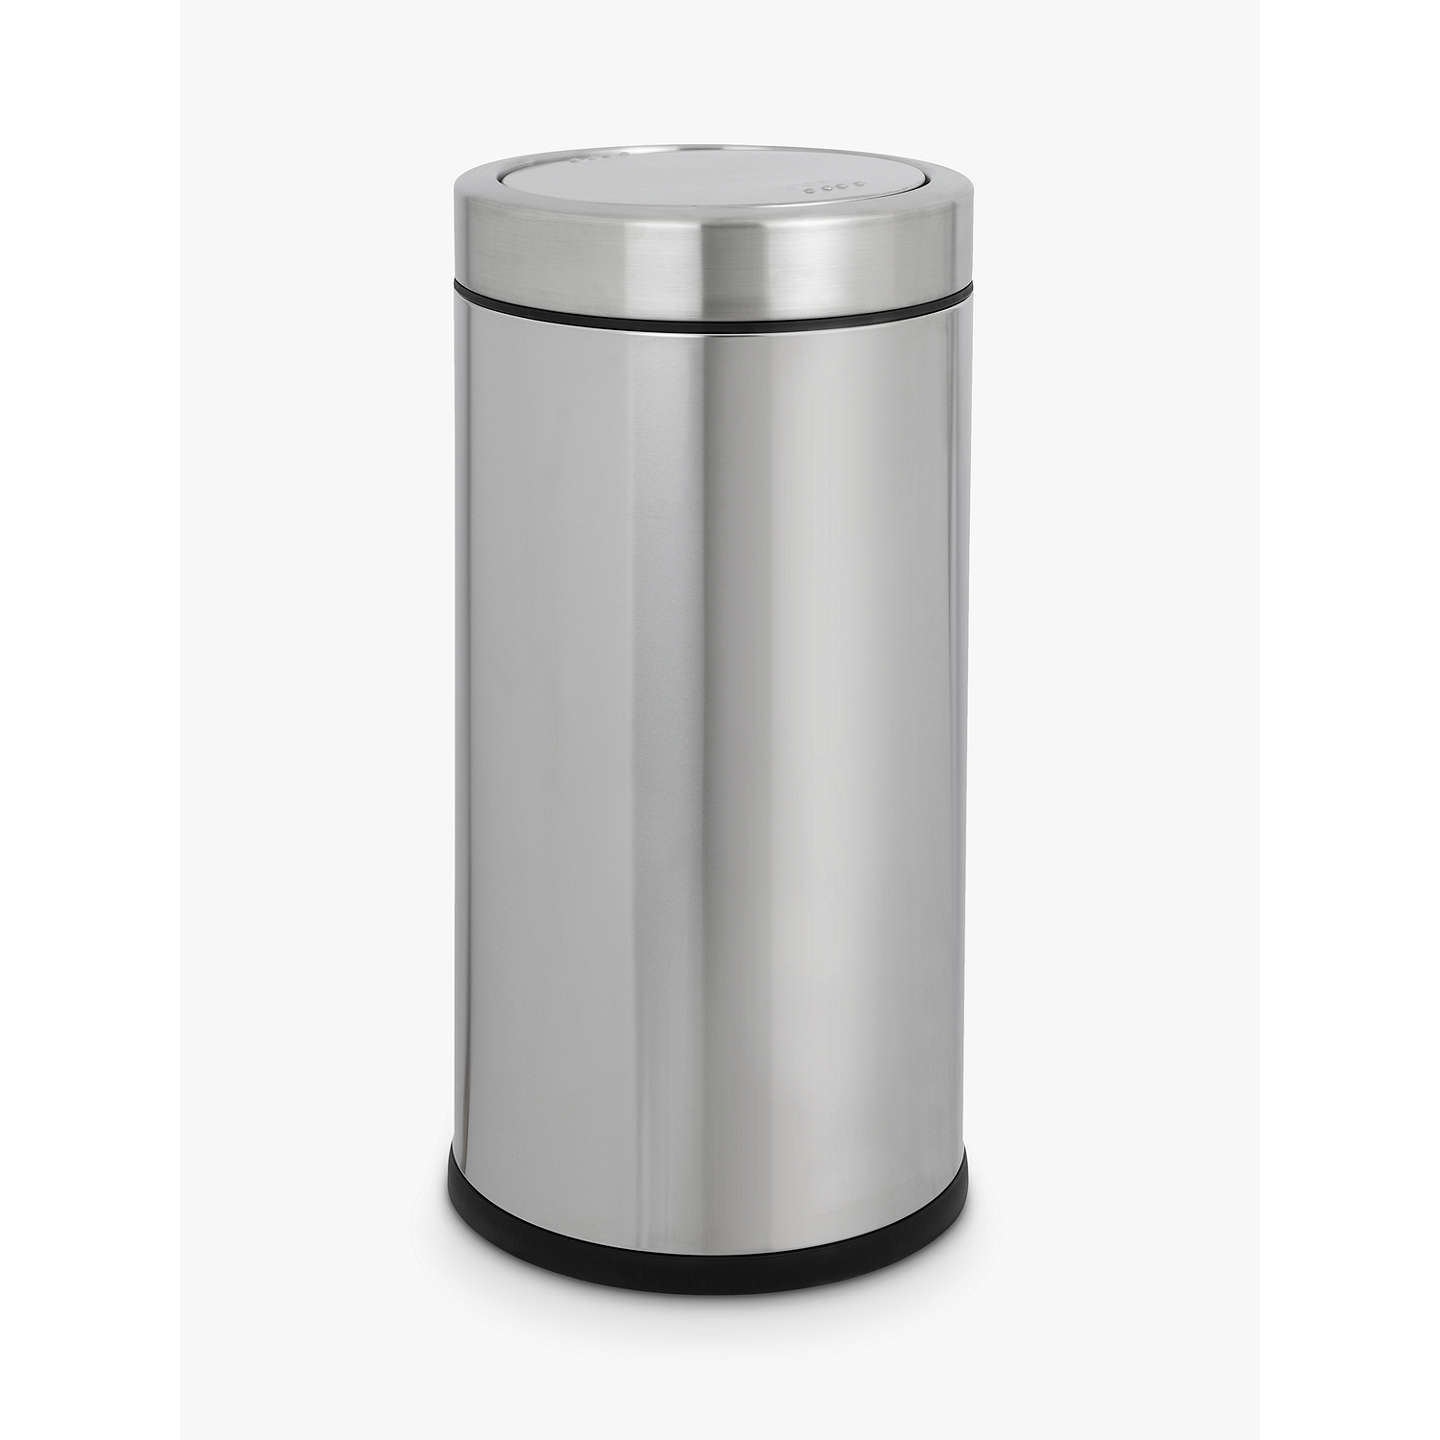 Buysimplehuman Round Swing Bin, Brushed Stainless Steel, 55L Online at johnlewis.com